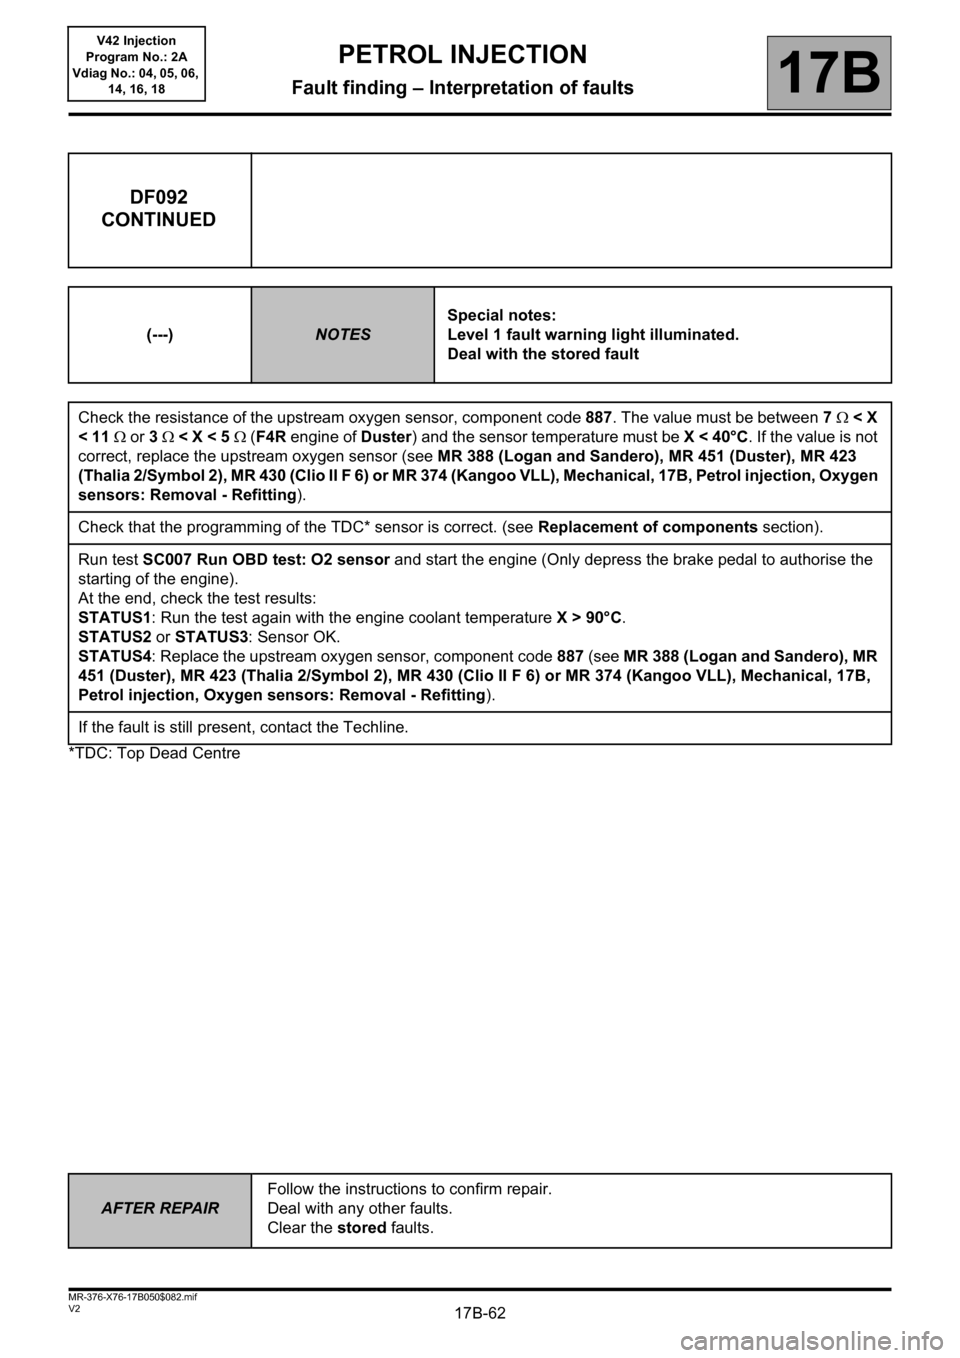 RENAULT KANGOO 2013 X61 / 2.G Petrol V42 Injection Workshop Manual, Page 62